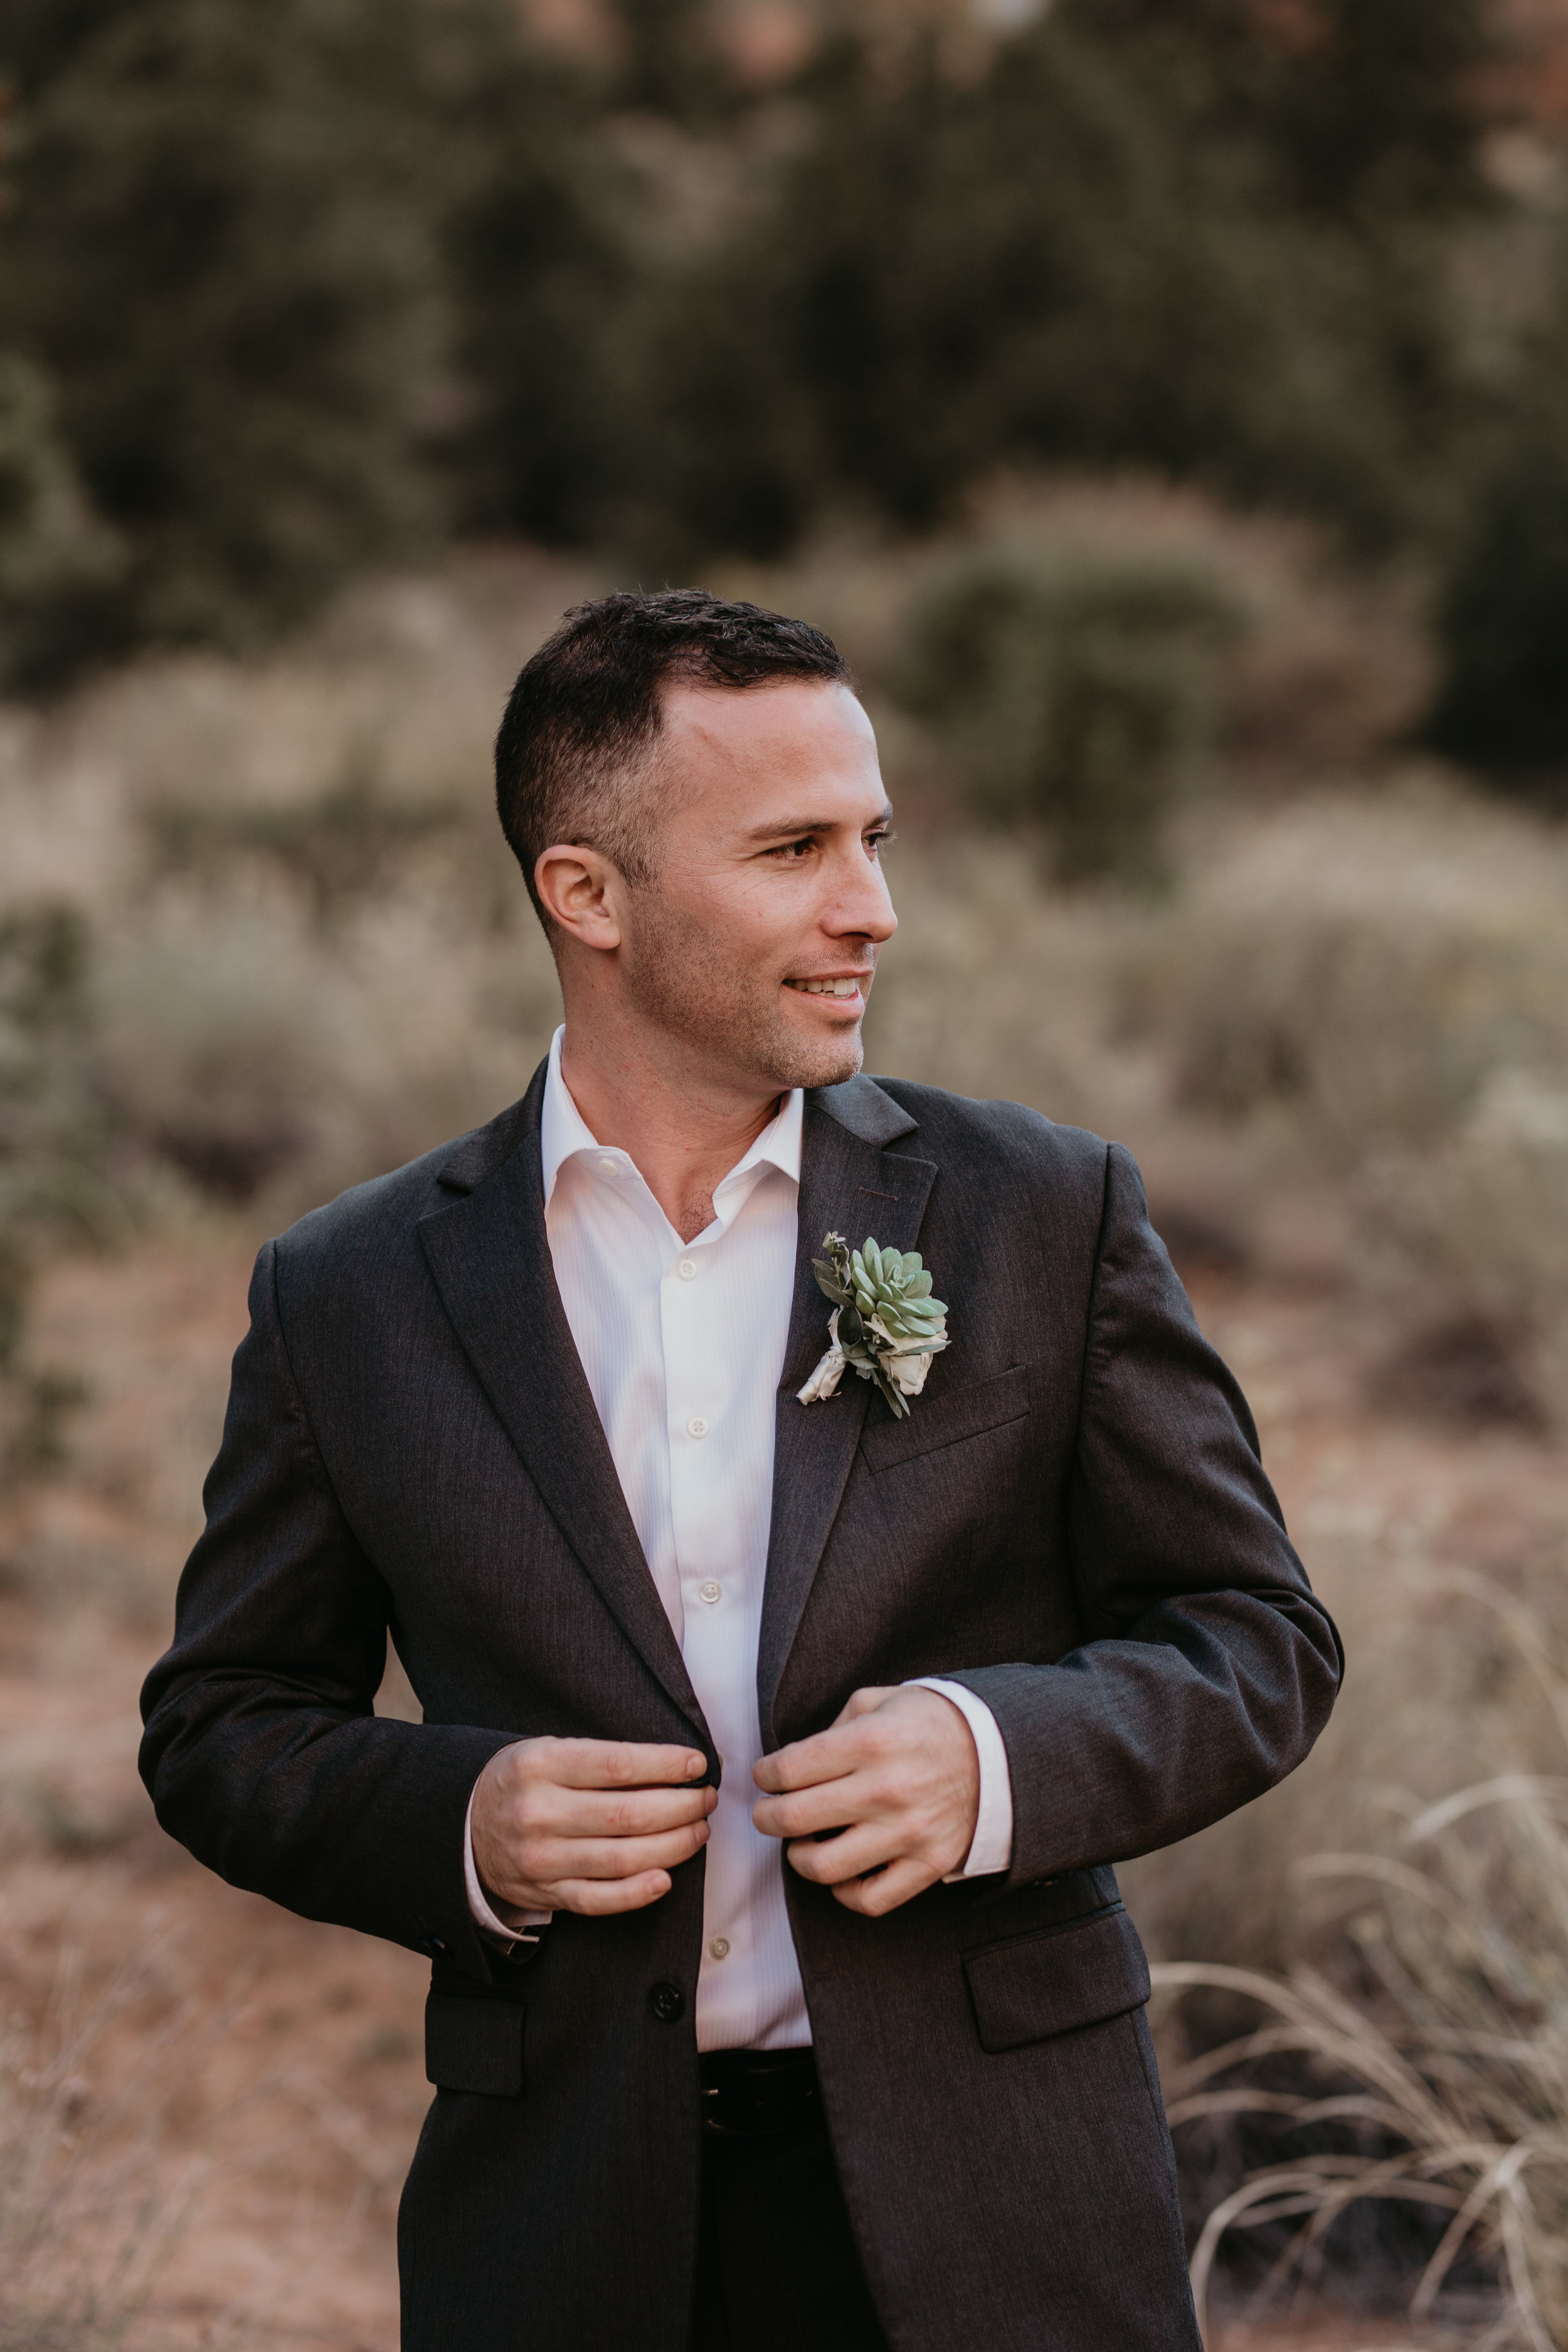 nicole-daacke-photography-zion-national-park-elopement-photographer-canyon-overlook-trail-elope-hiking-adventure-wedding-photos-fall-utah-red-rock-canyon-stgeorge-eloping-photographer-18.jpg